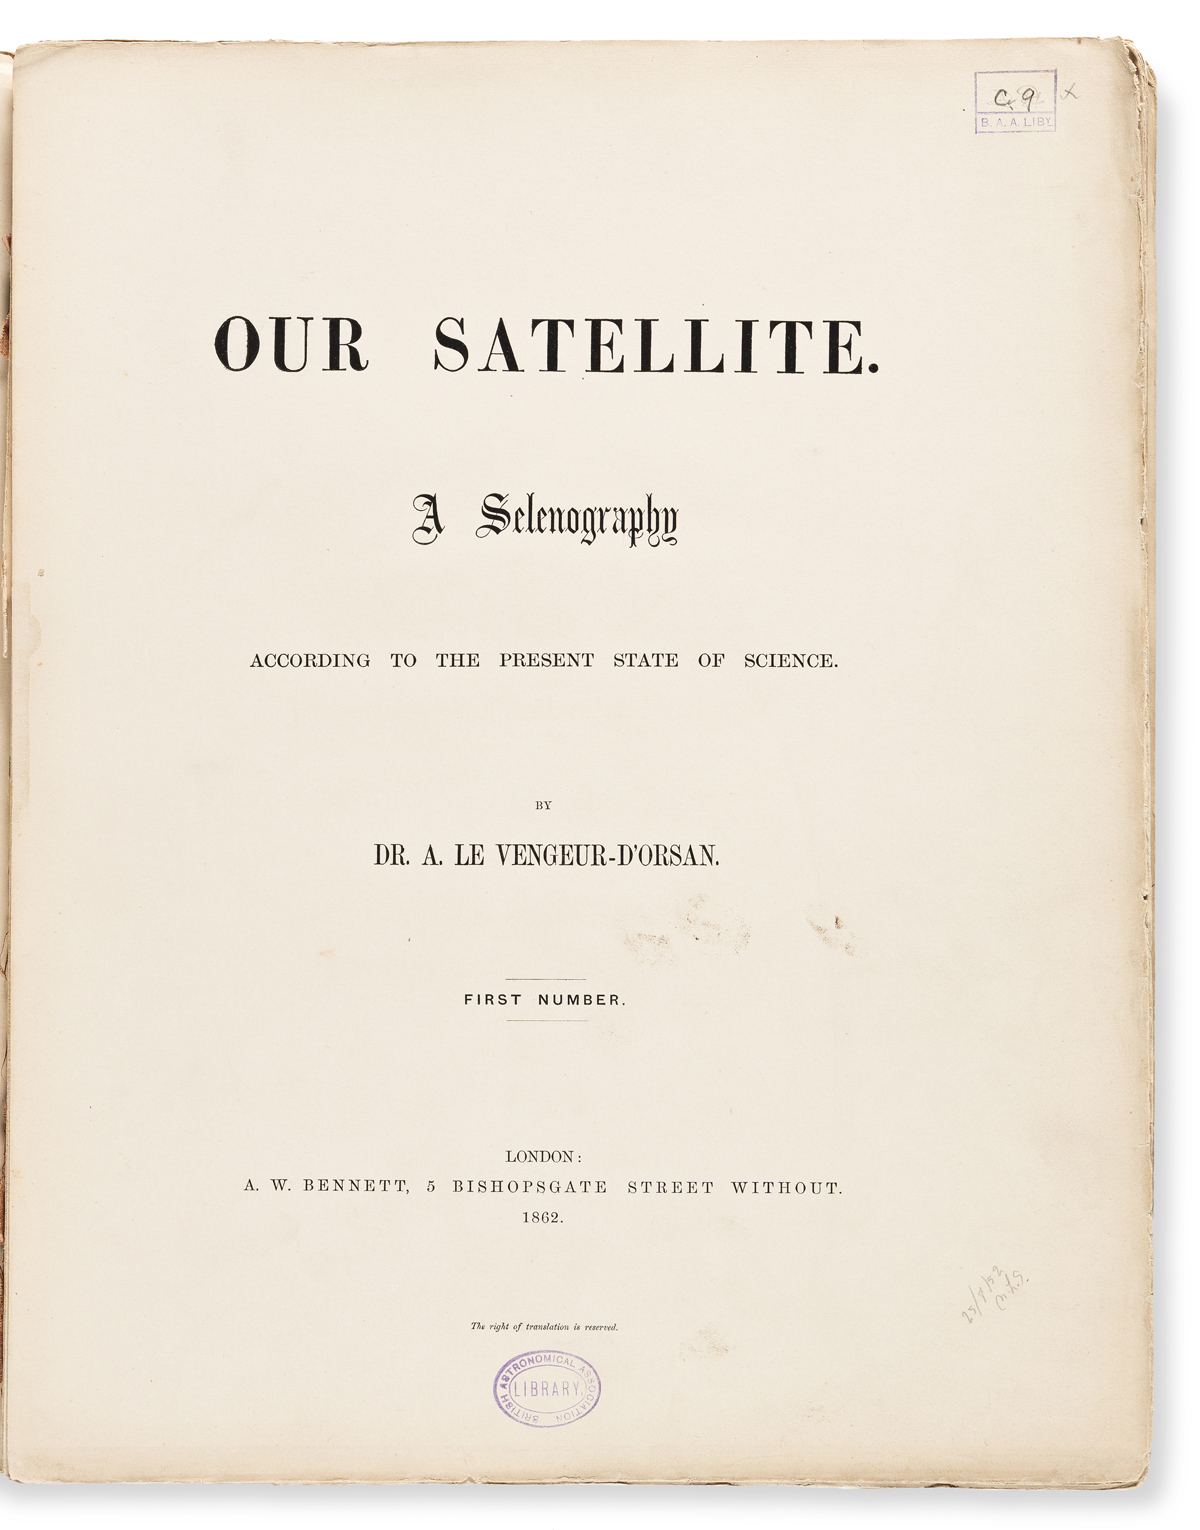 Le Vengeur DOrsan, A. (fl. circa 1860) Our Satellite. A Selenography According to the Present State of Science.